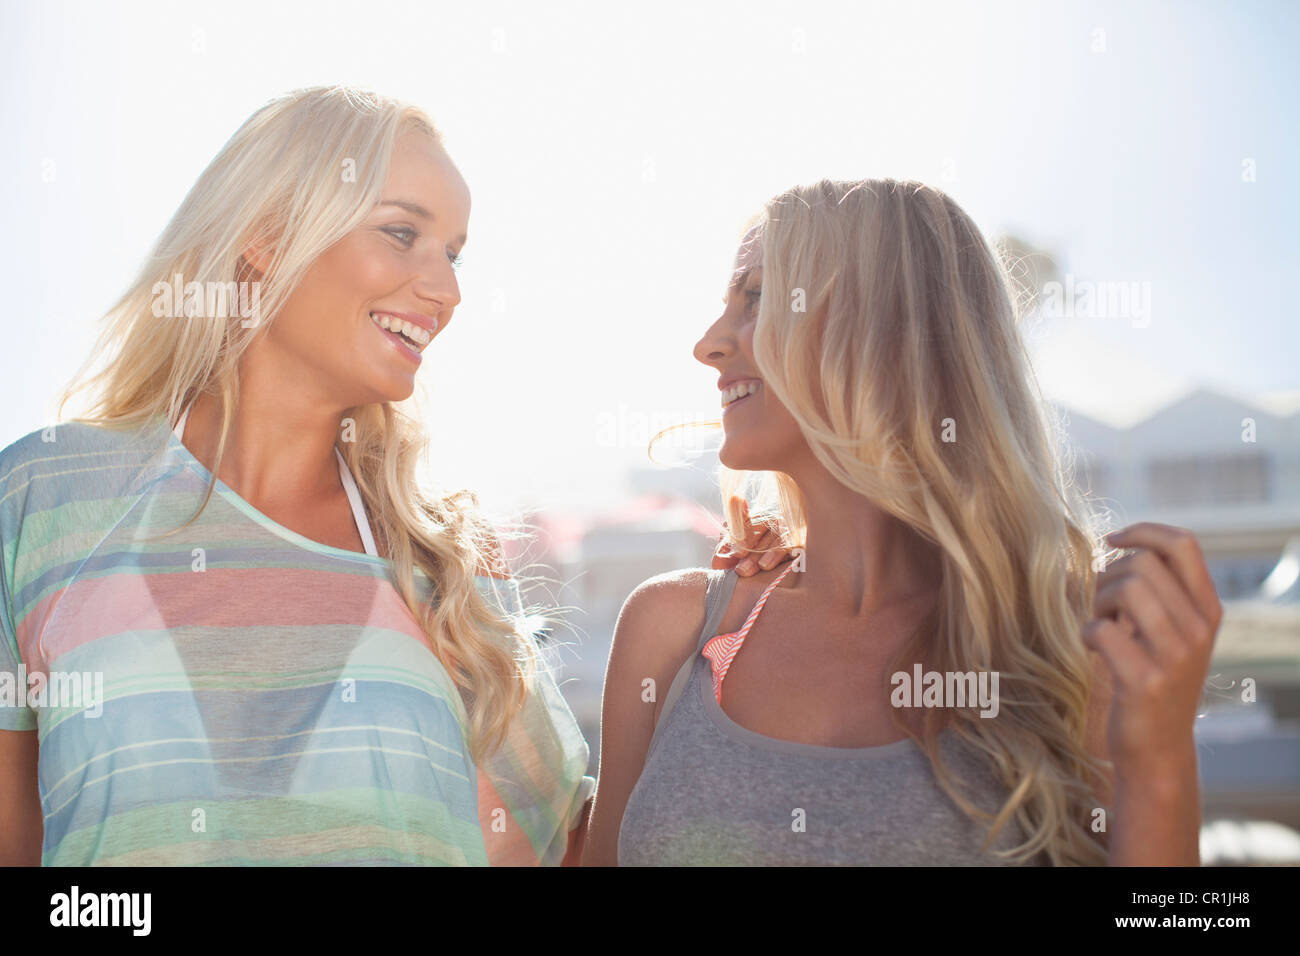 Smiling women walking together outdoors - Stock Image